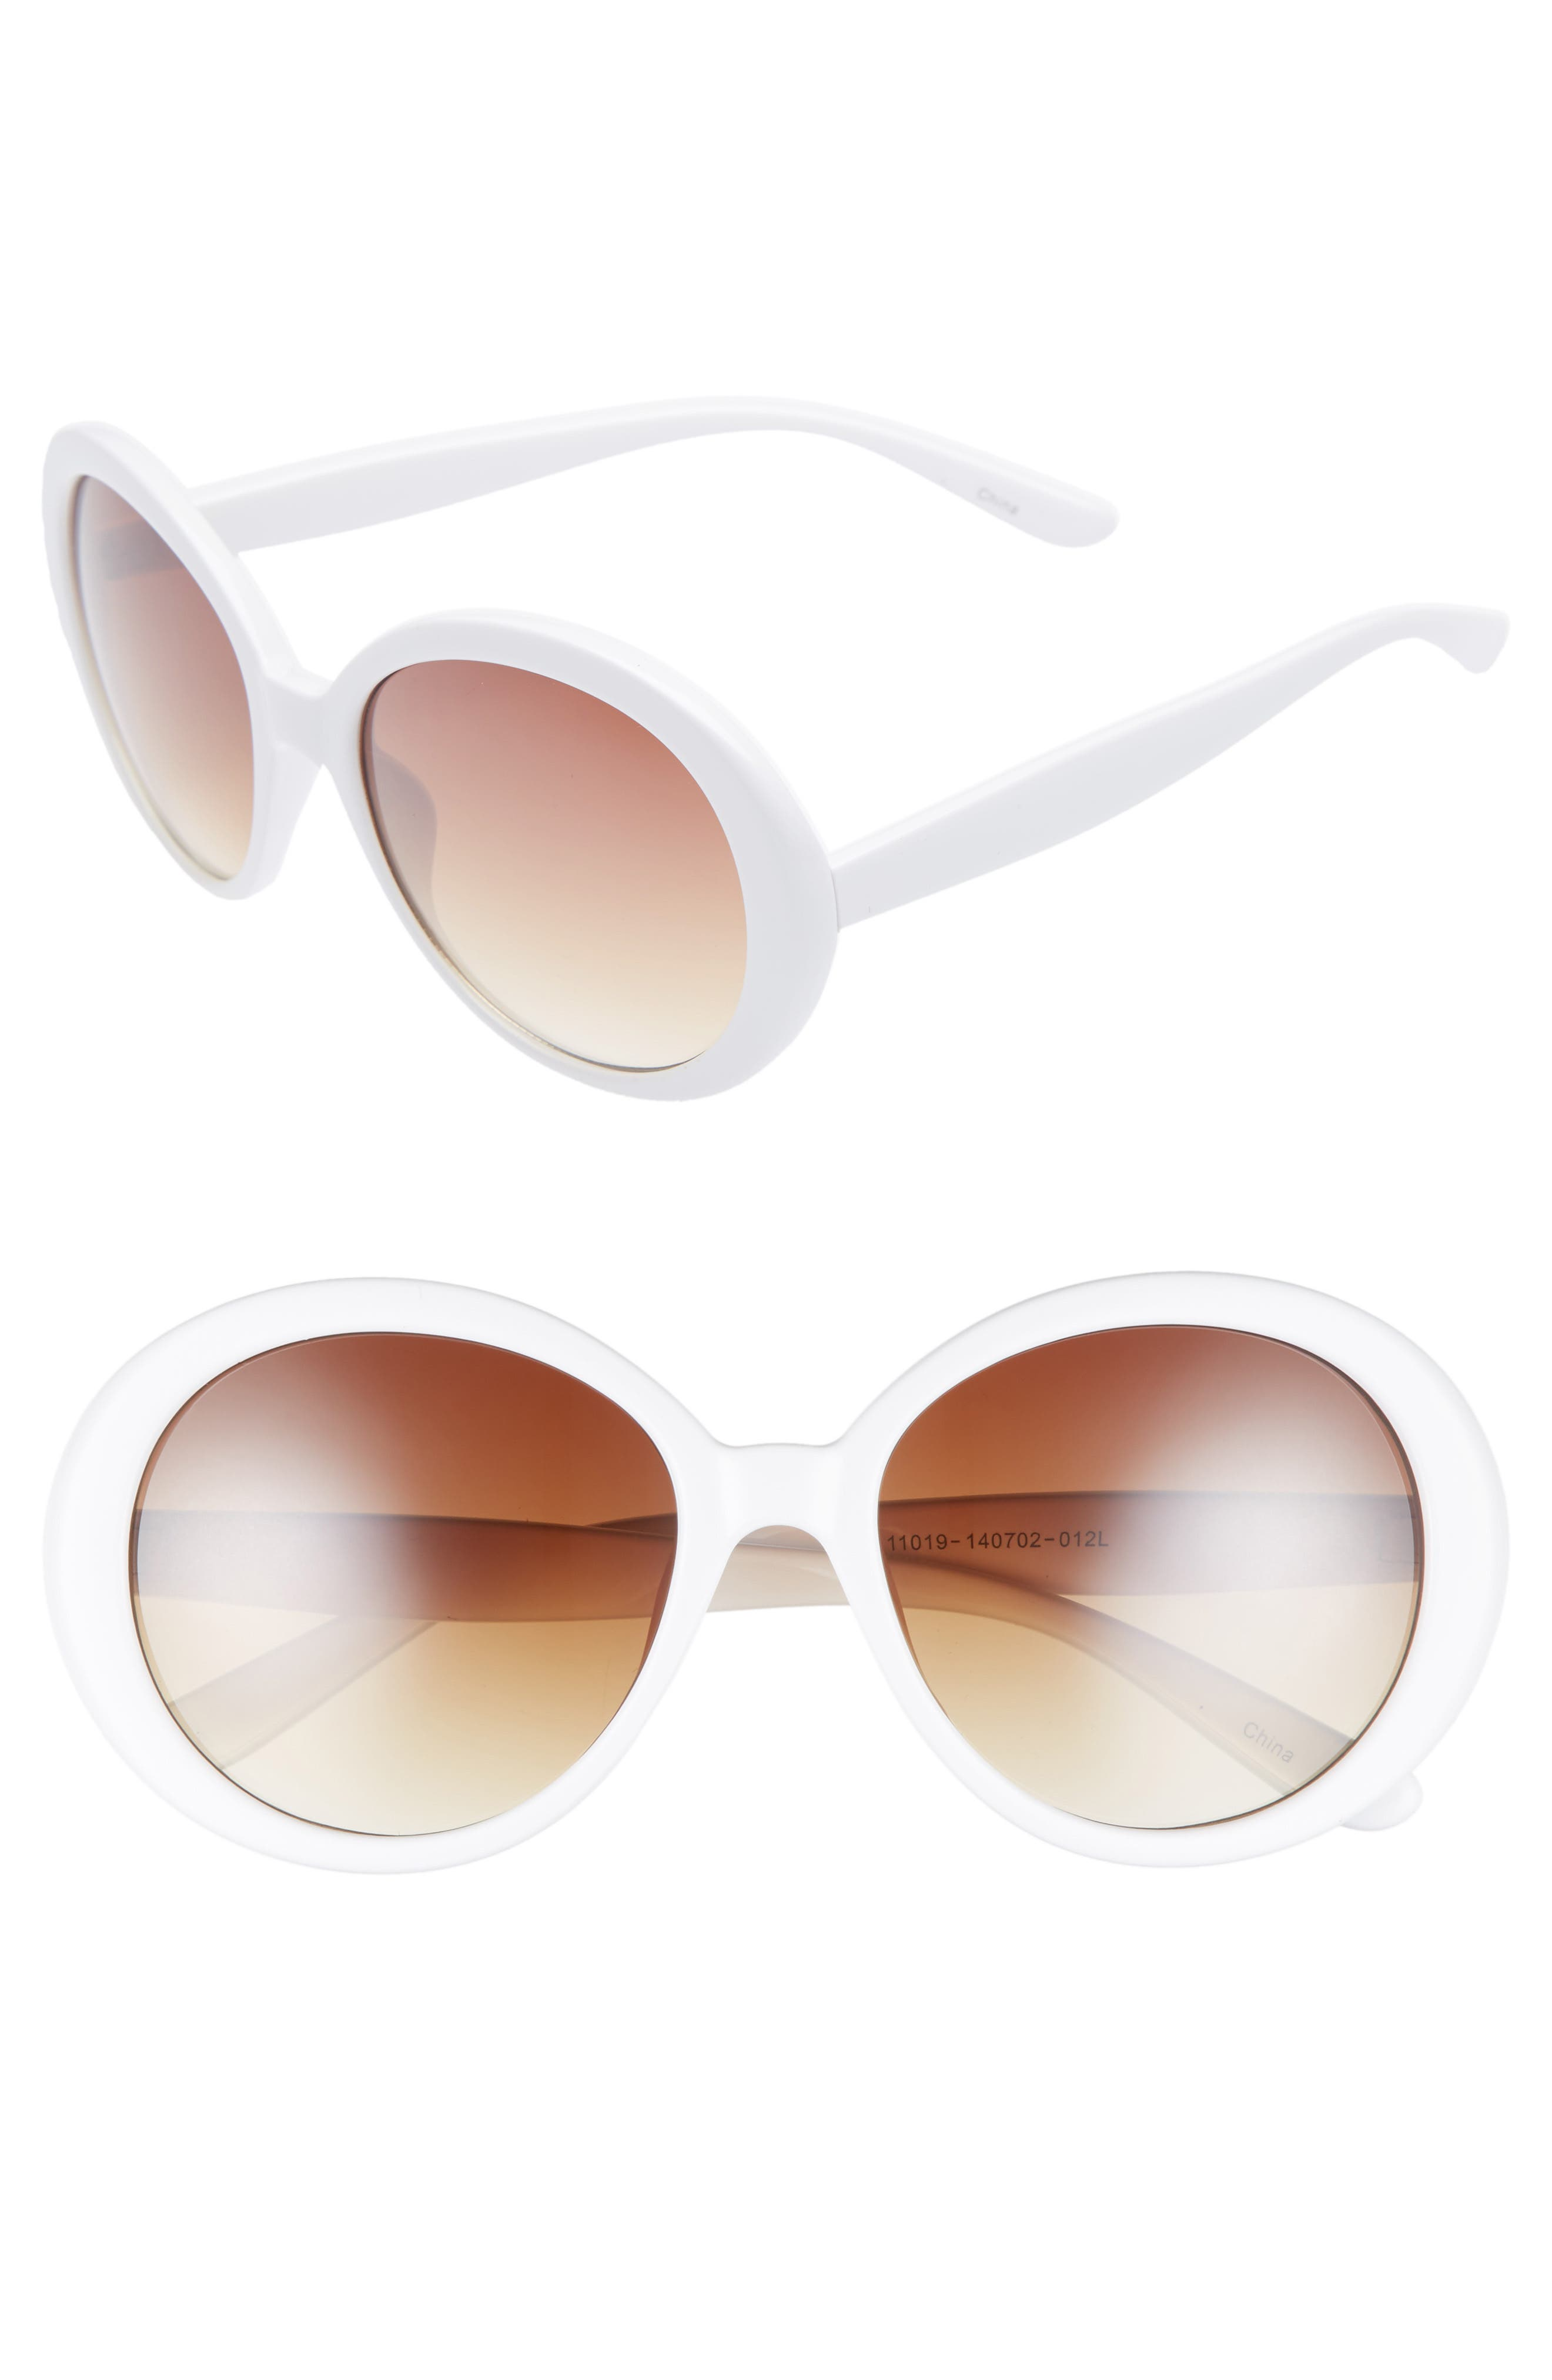 55mm Oval Sunglasses,                             Main thumbnail 1, color,                             Cream/ Brown